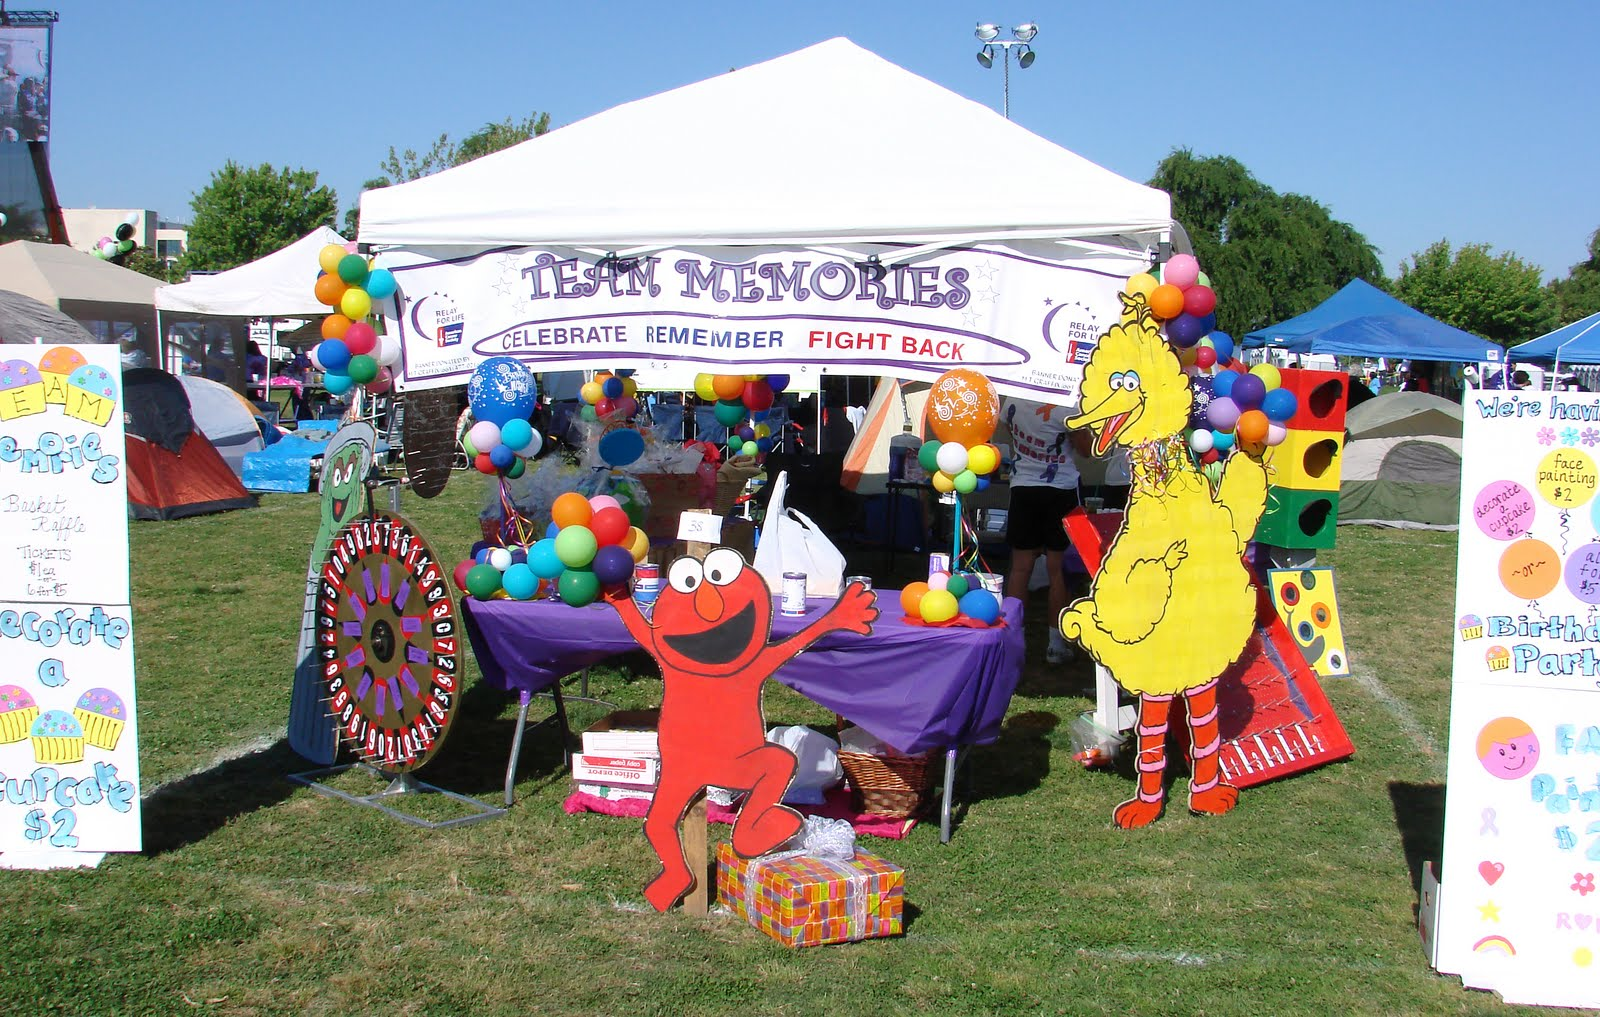 Johnny Cheers: Relay for Life: Team Memories